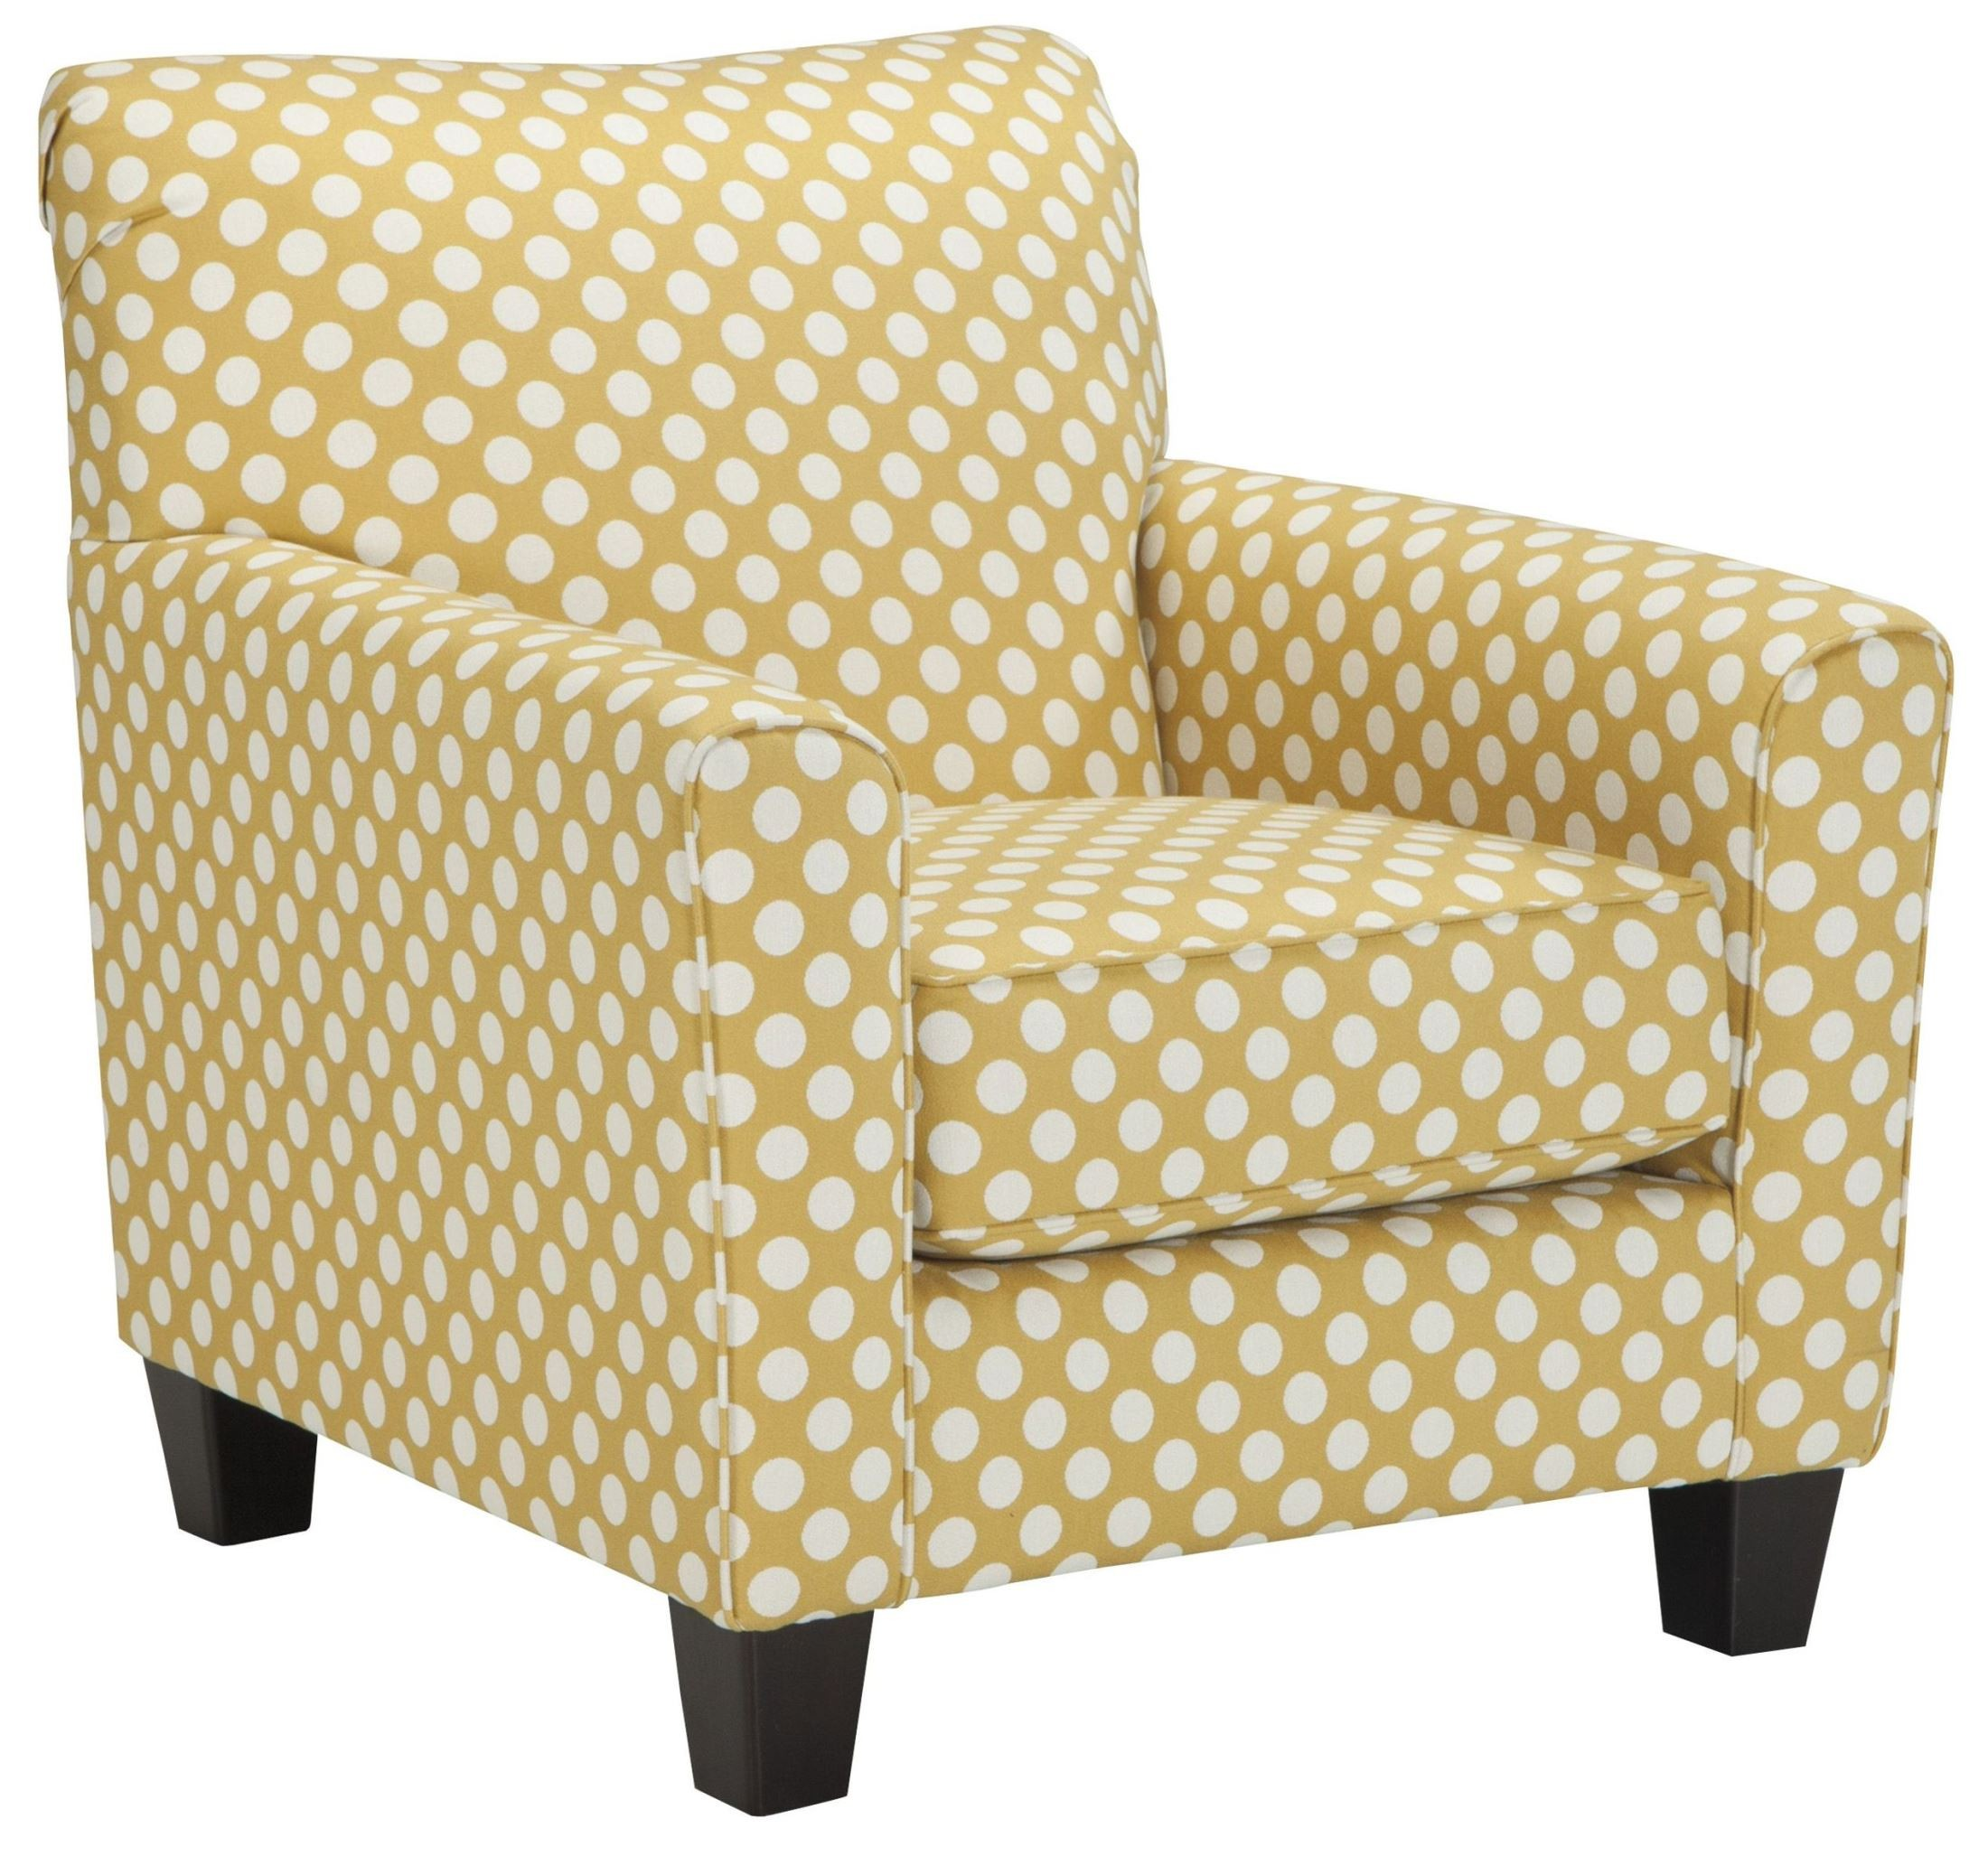 Brindon Yellow Accent Chair from Ashley